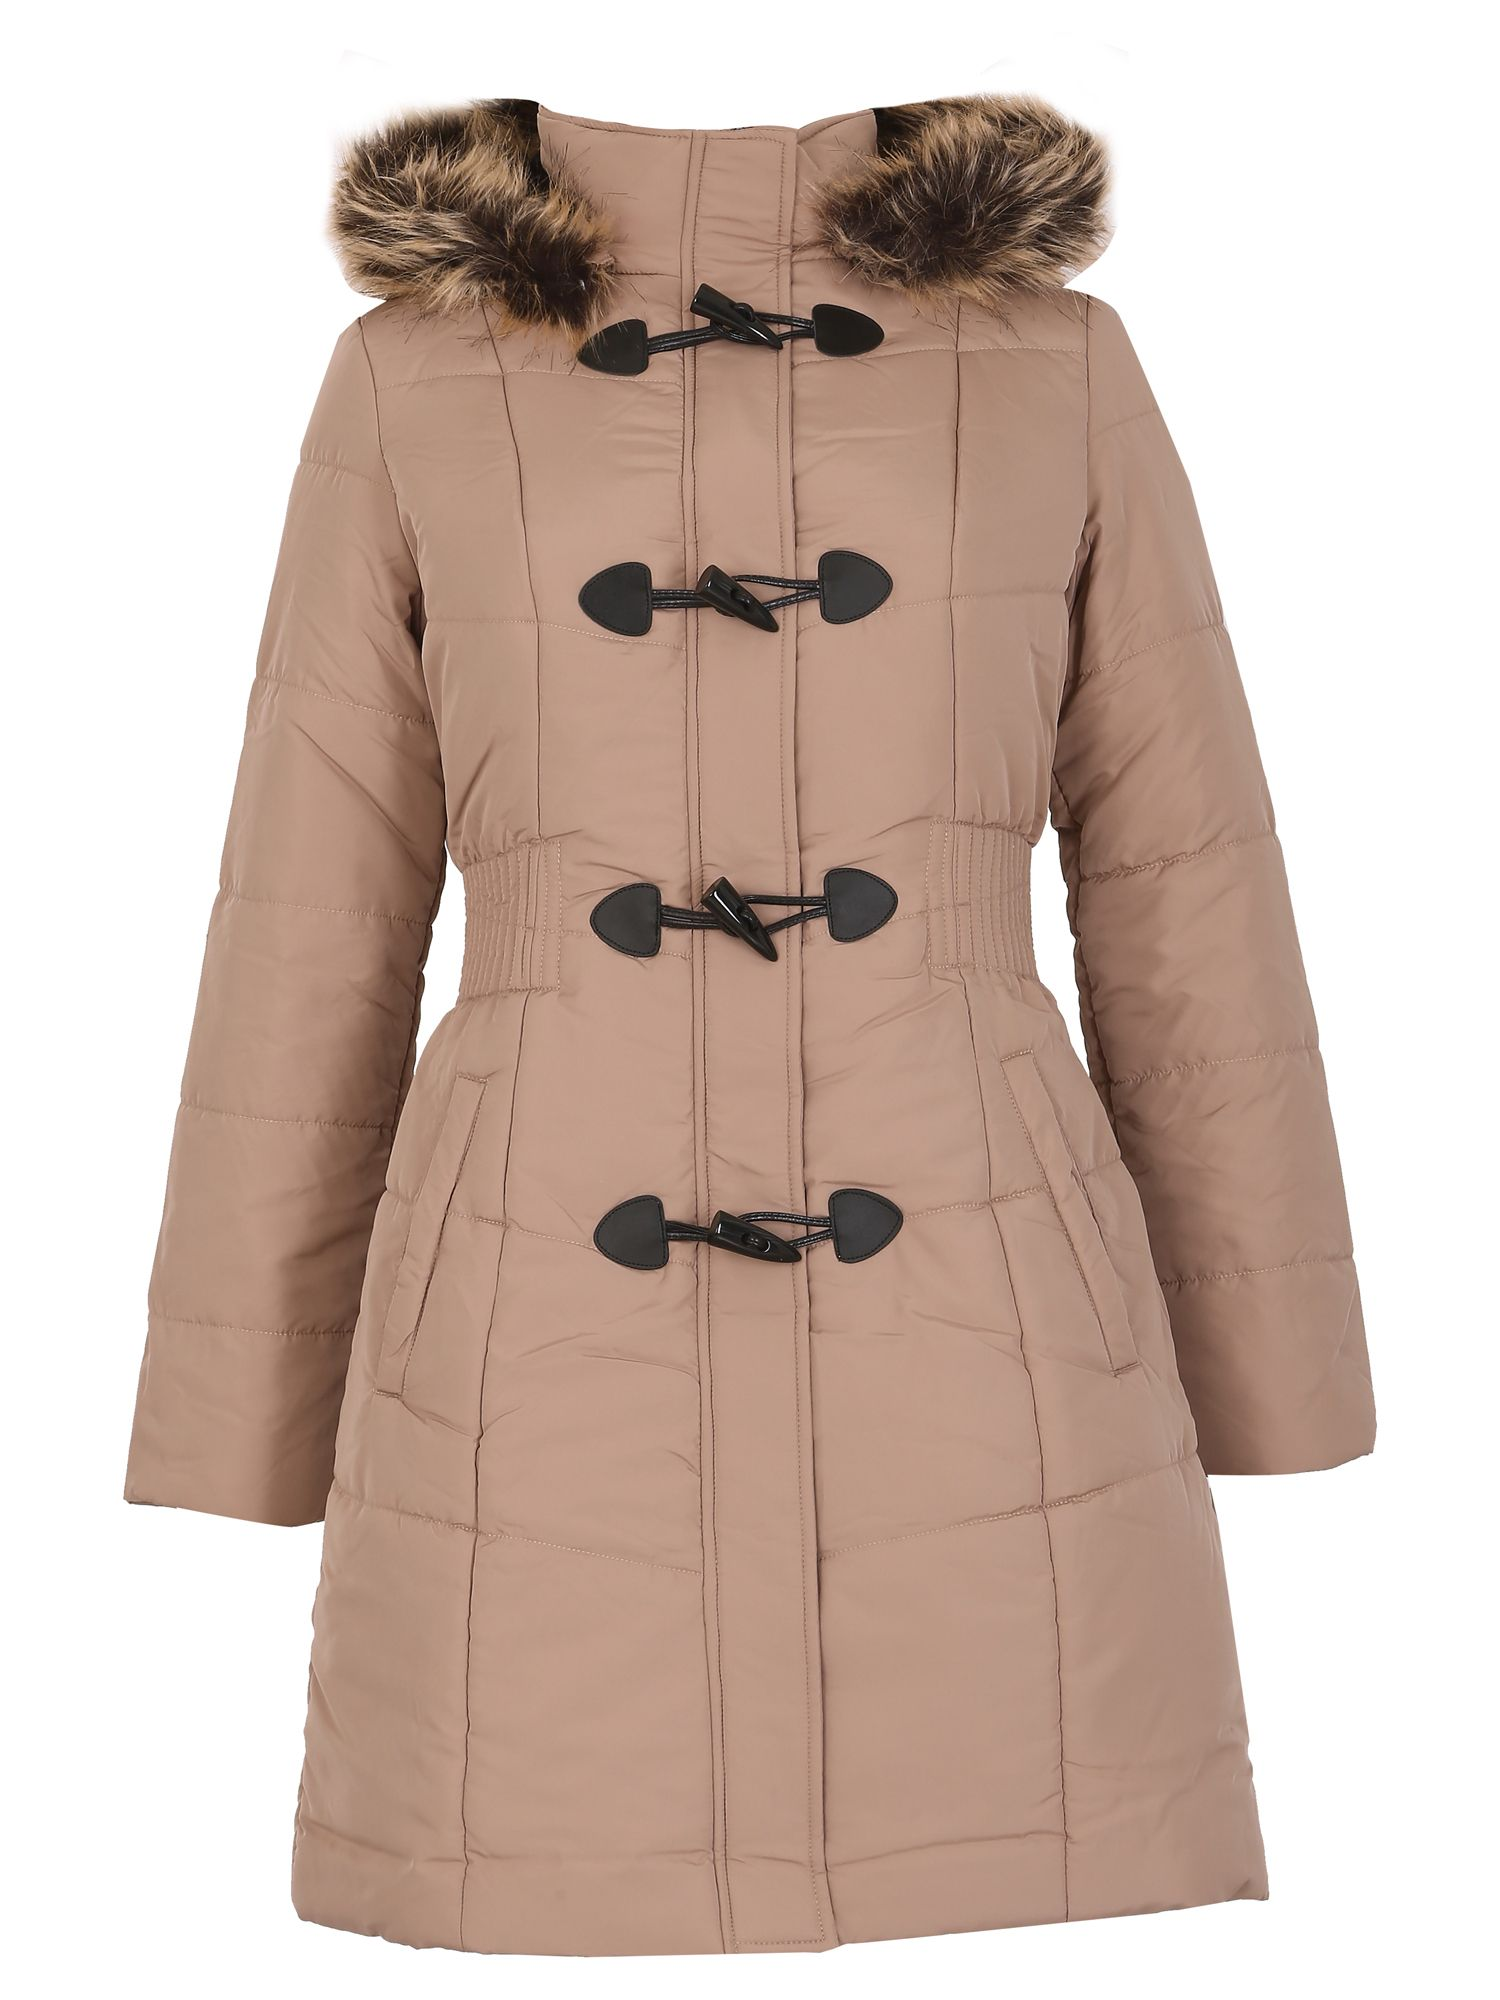 David Barry David Barry Womens Warm Padded Parka Coat, Beige